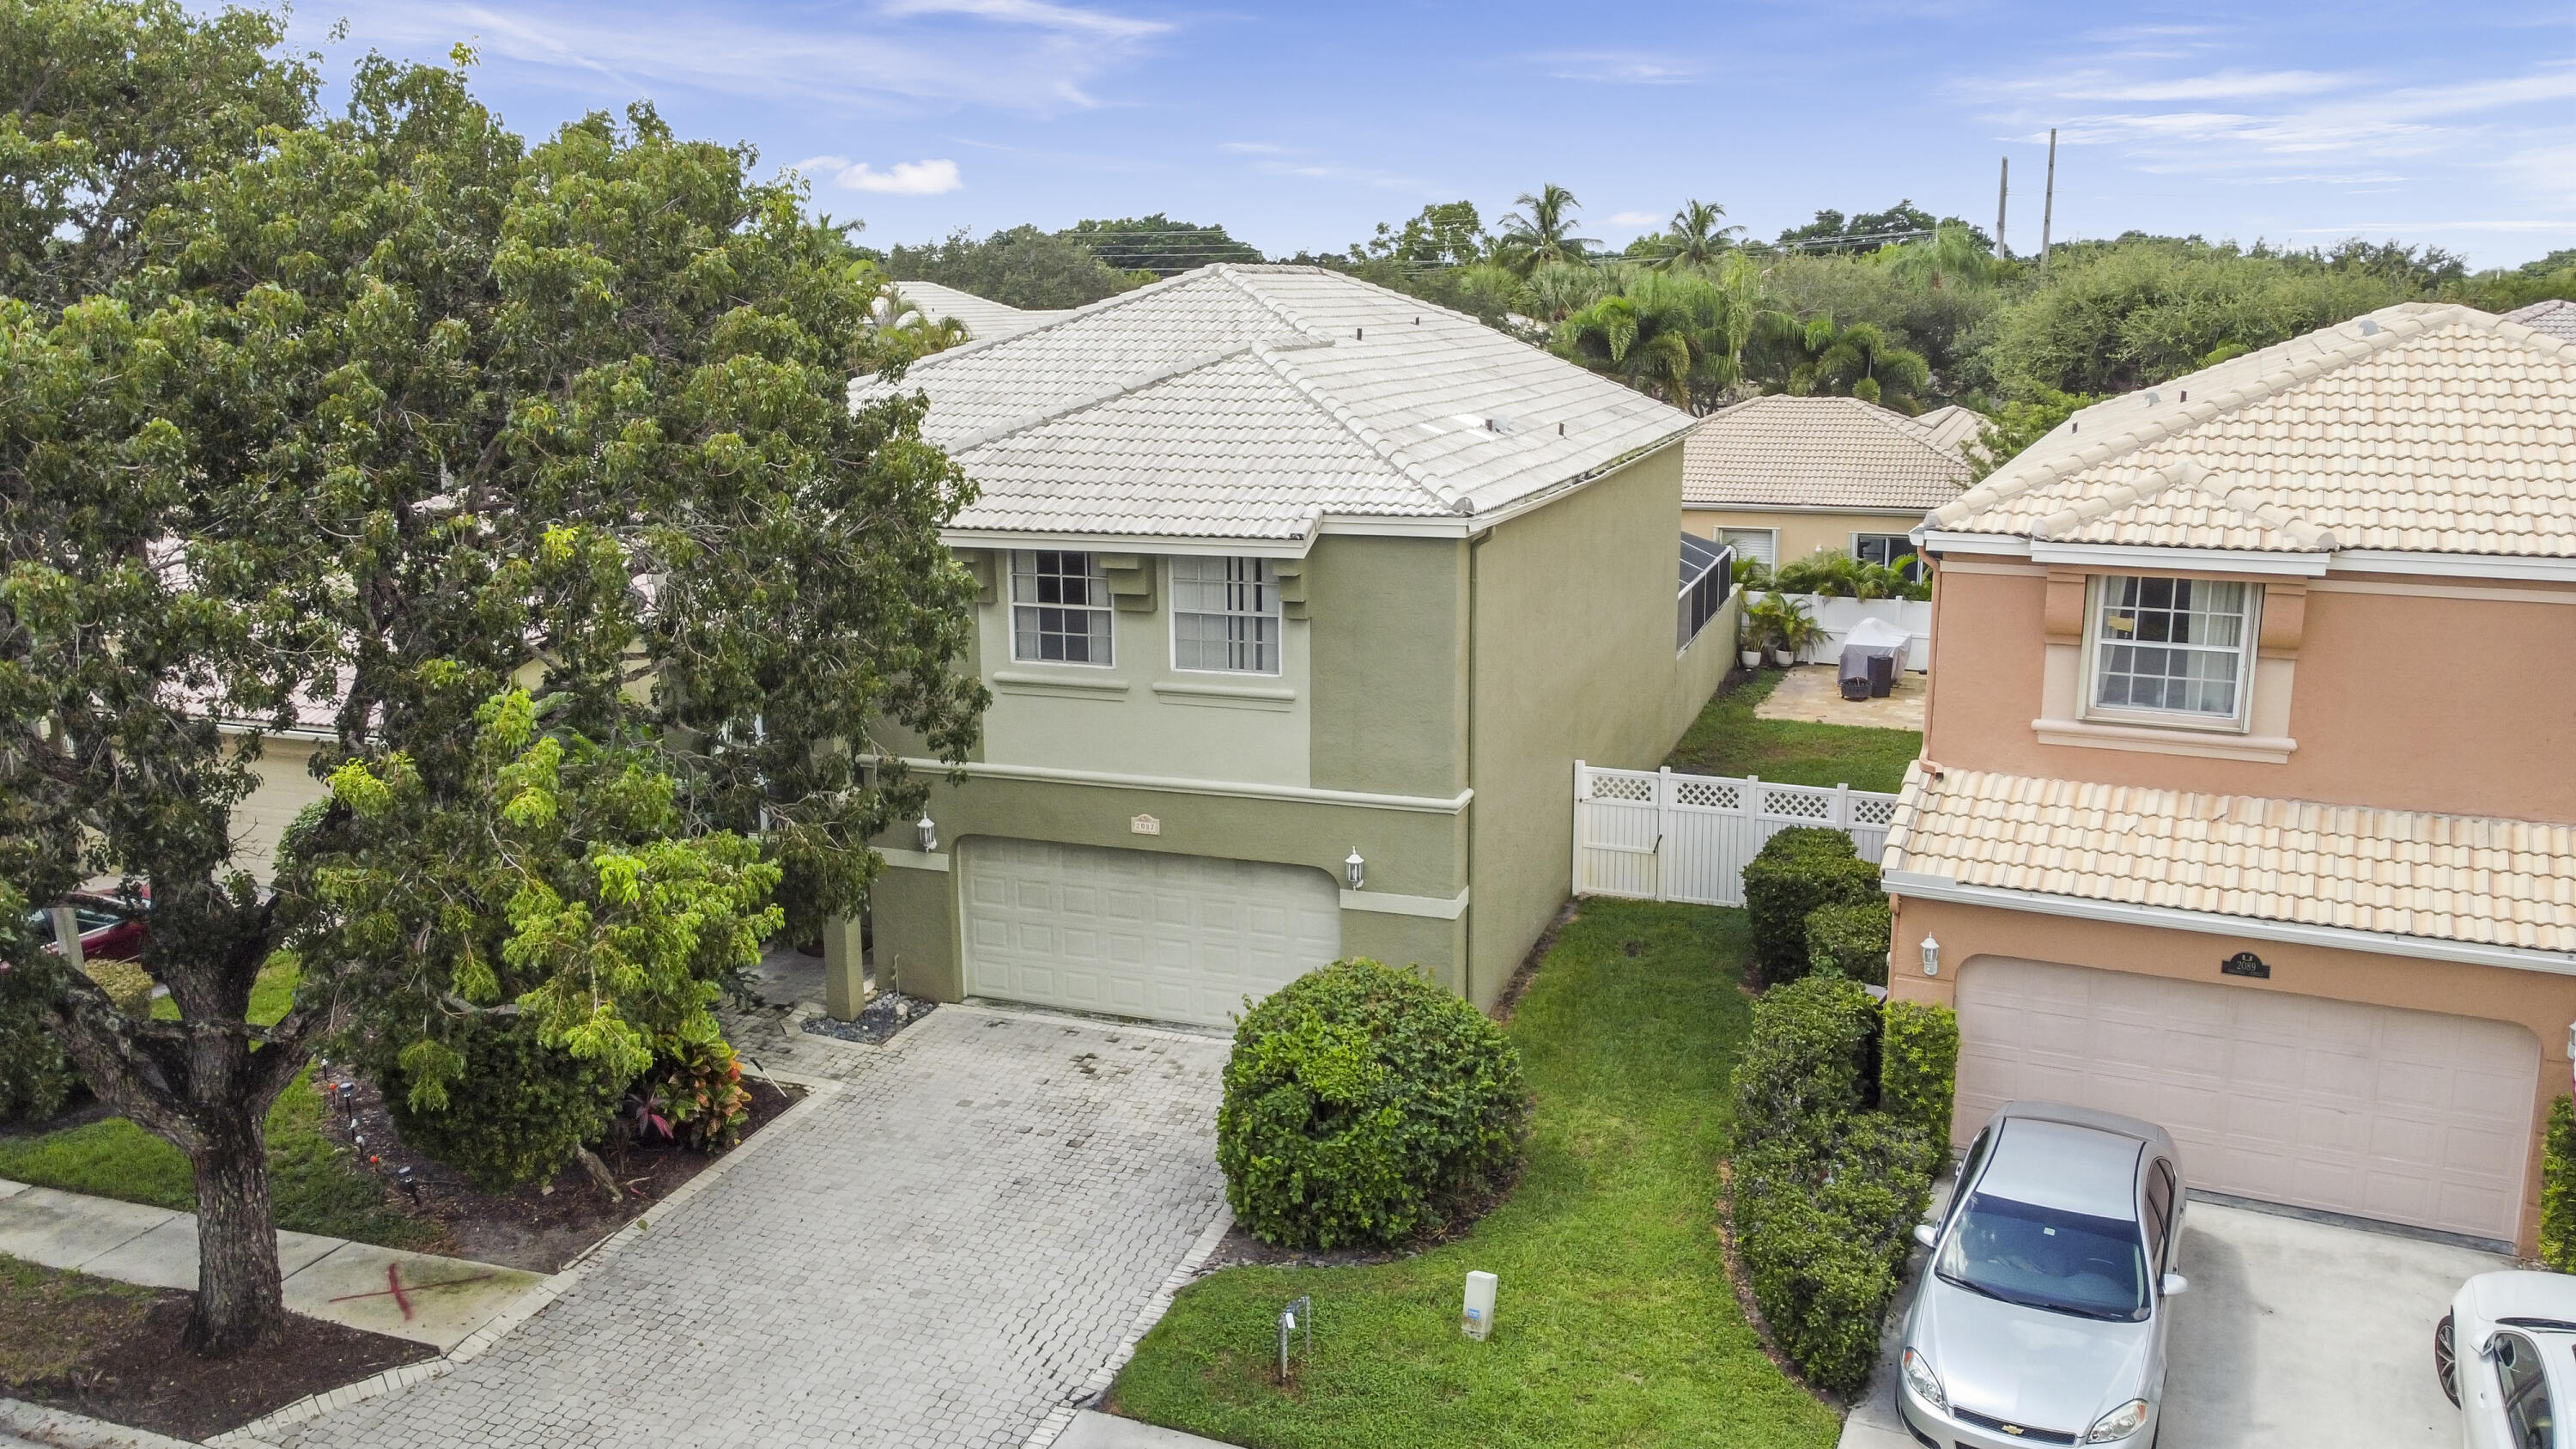 Two story, single family home in the desirable Classics at Bear Lakes. Centrally located to 95, the outlet mall and minutes from Downtown WPB. This 4 bedroom home has a screened in patio with a beautiful pool, huge master bedroom, den/office area downstairs, no carpet & great floor plan. AC was installed in 2017 along with a new water heater & pool pump. The dishwasher was installed in 2018. Basic landscaping is included with the HOA along with great amenities in the community!